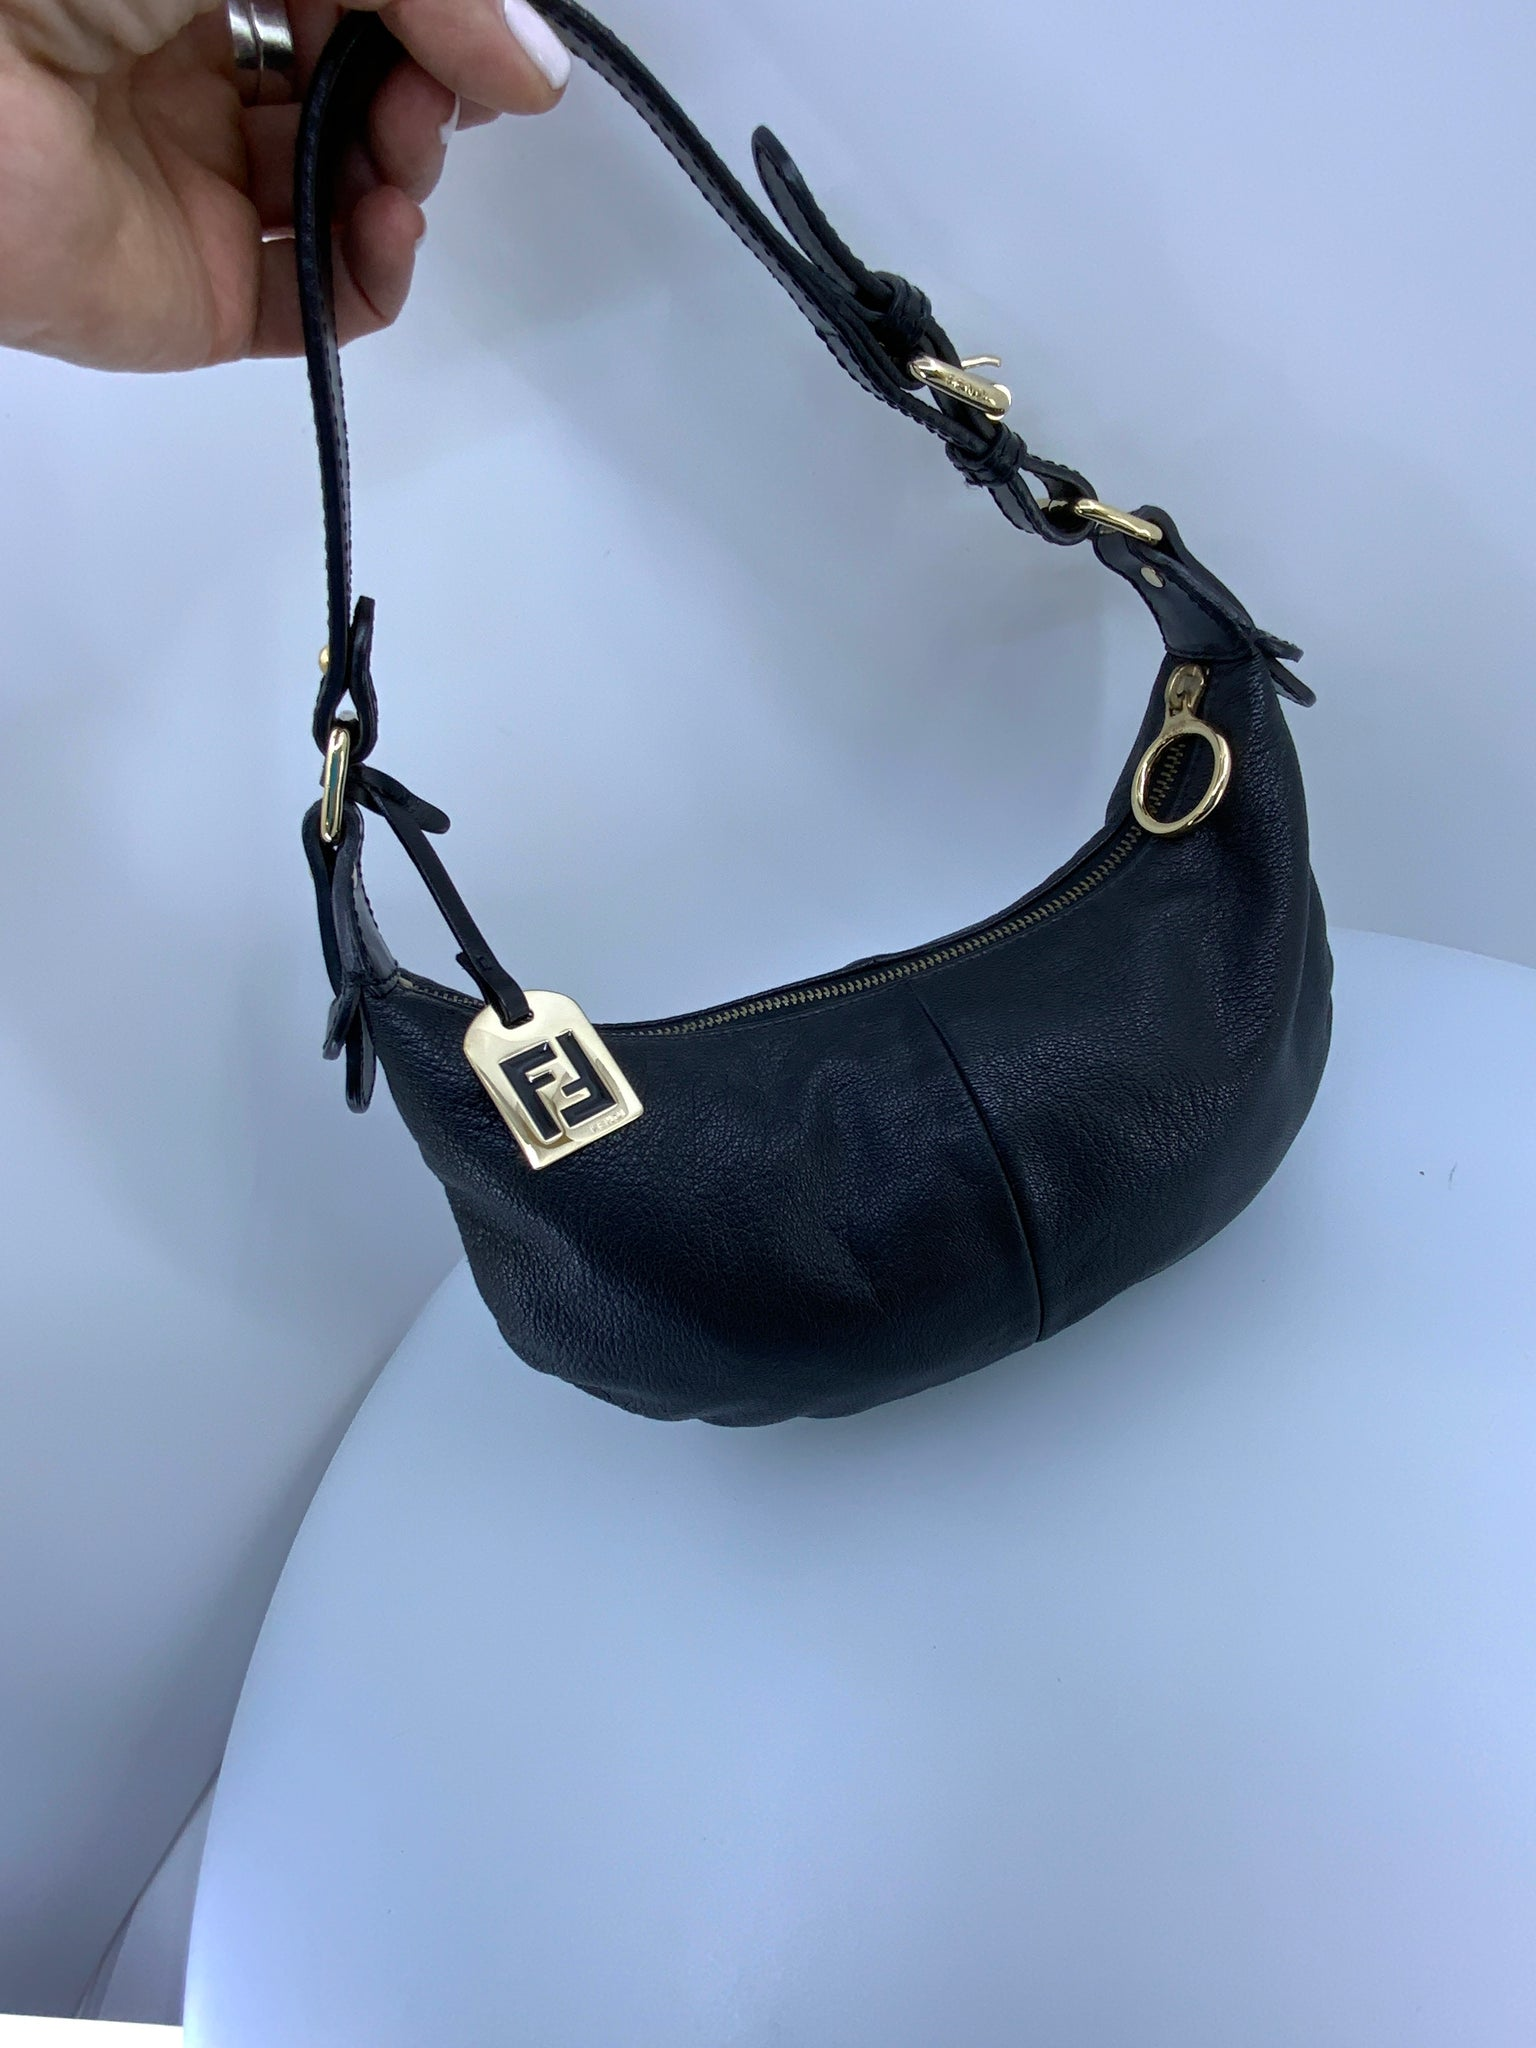 Authenticed Fendi mini hobo bag. Black leather EUC